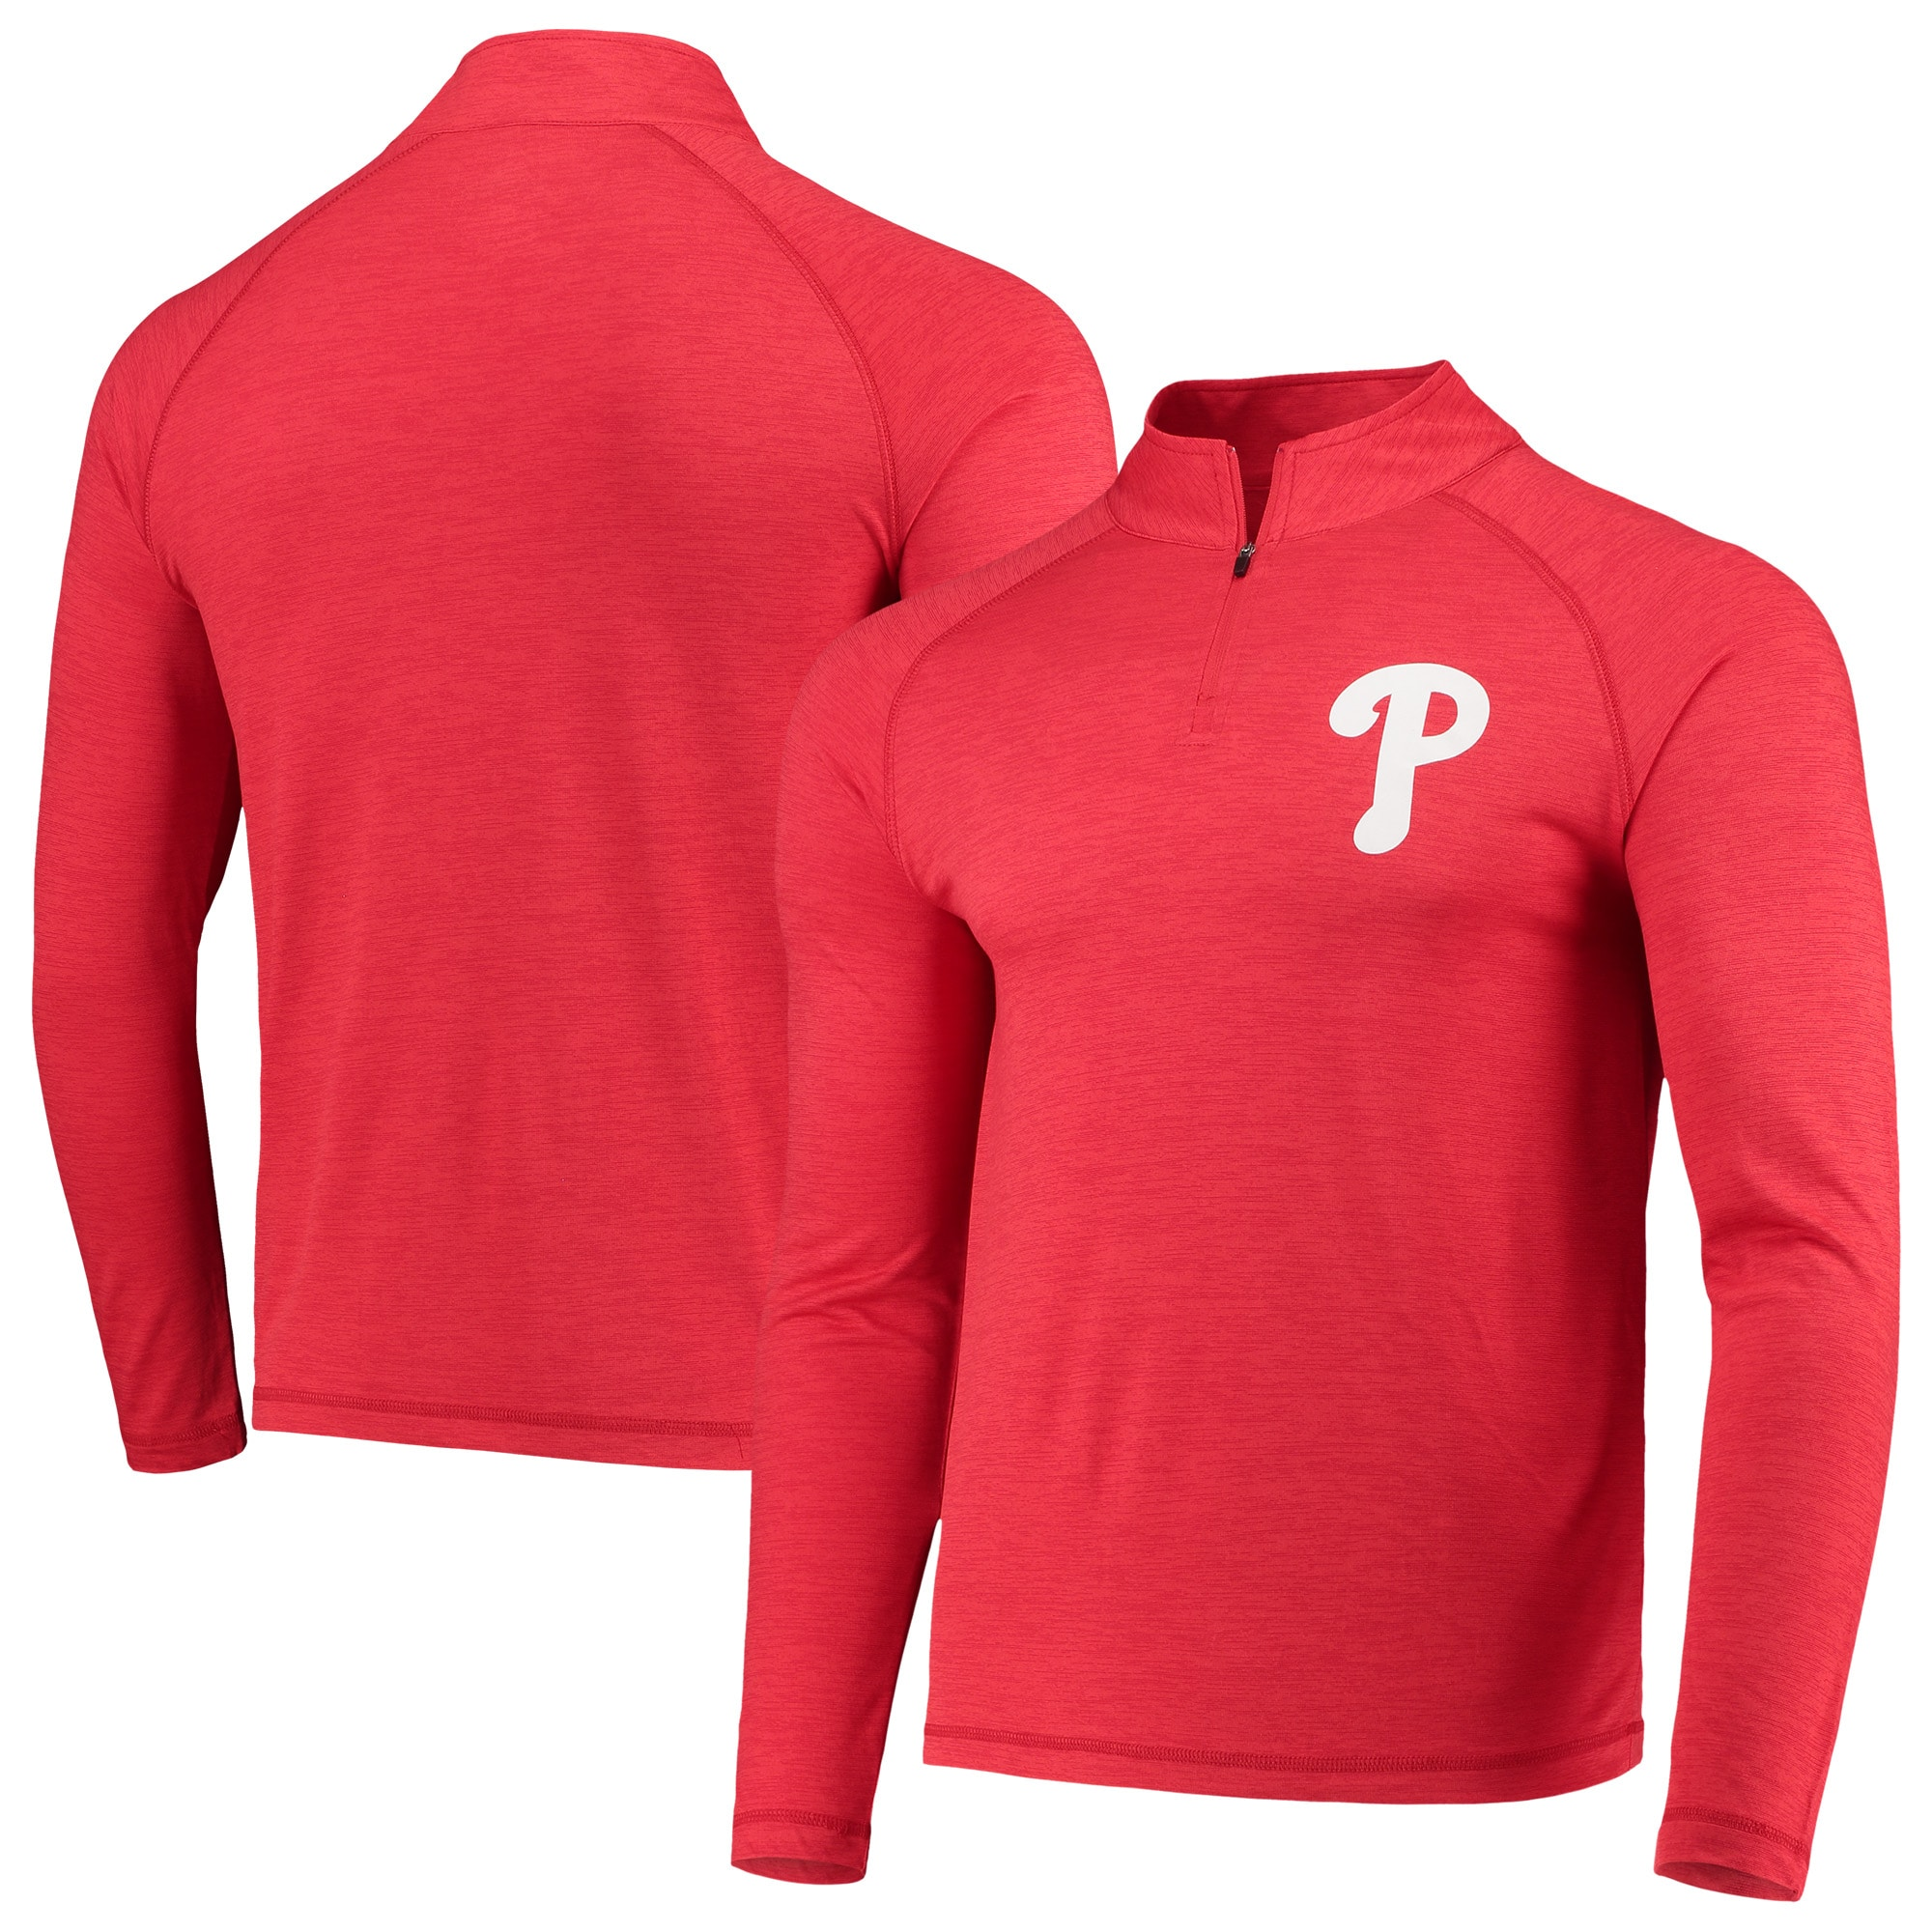 Philadelphia Phillies Majestic Striated Primary Logo Cool Base Raglan Quarter-Zip Pullover Jacket - Heathered Red